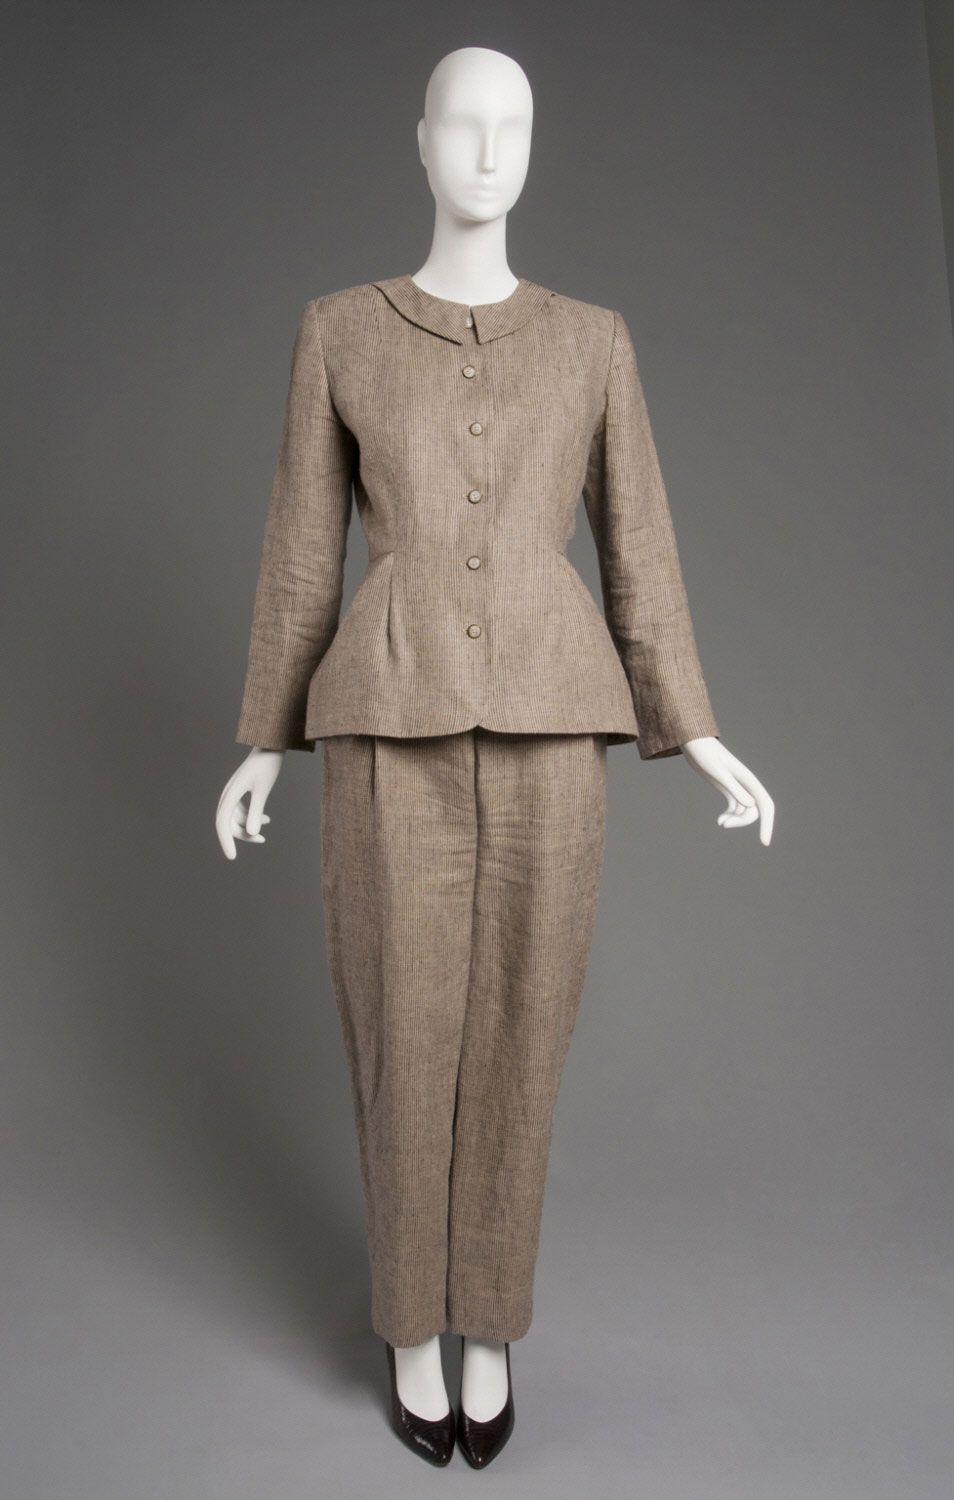 Geoffrey Beene Woman's Suit: Jacket and Trousers c. 1990 Medium: Black and tan striped linen plain weave